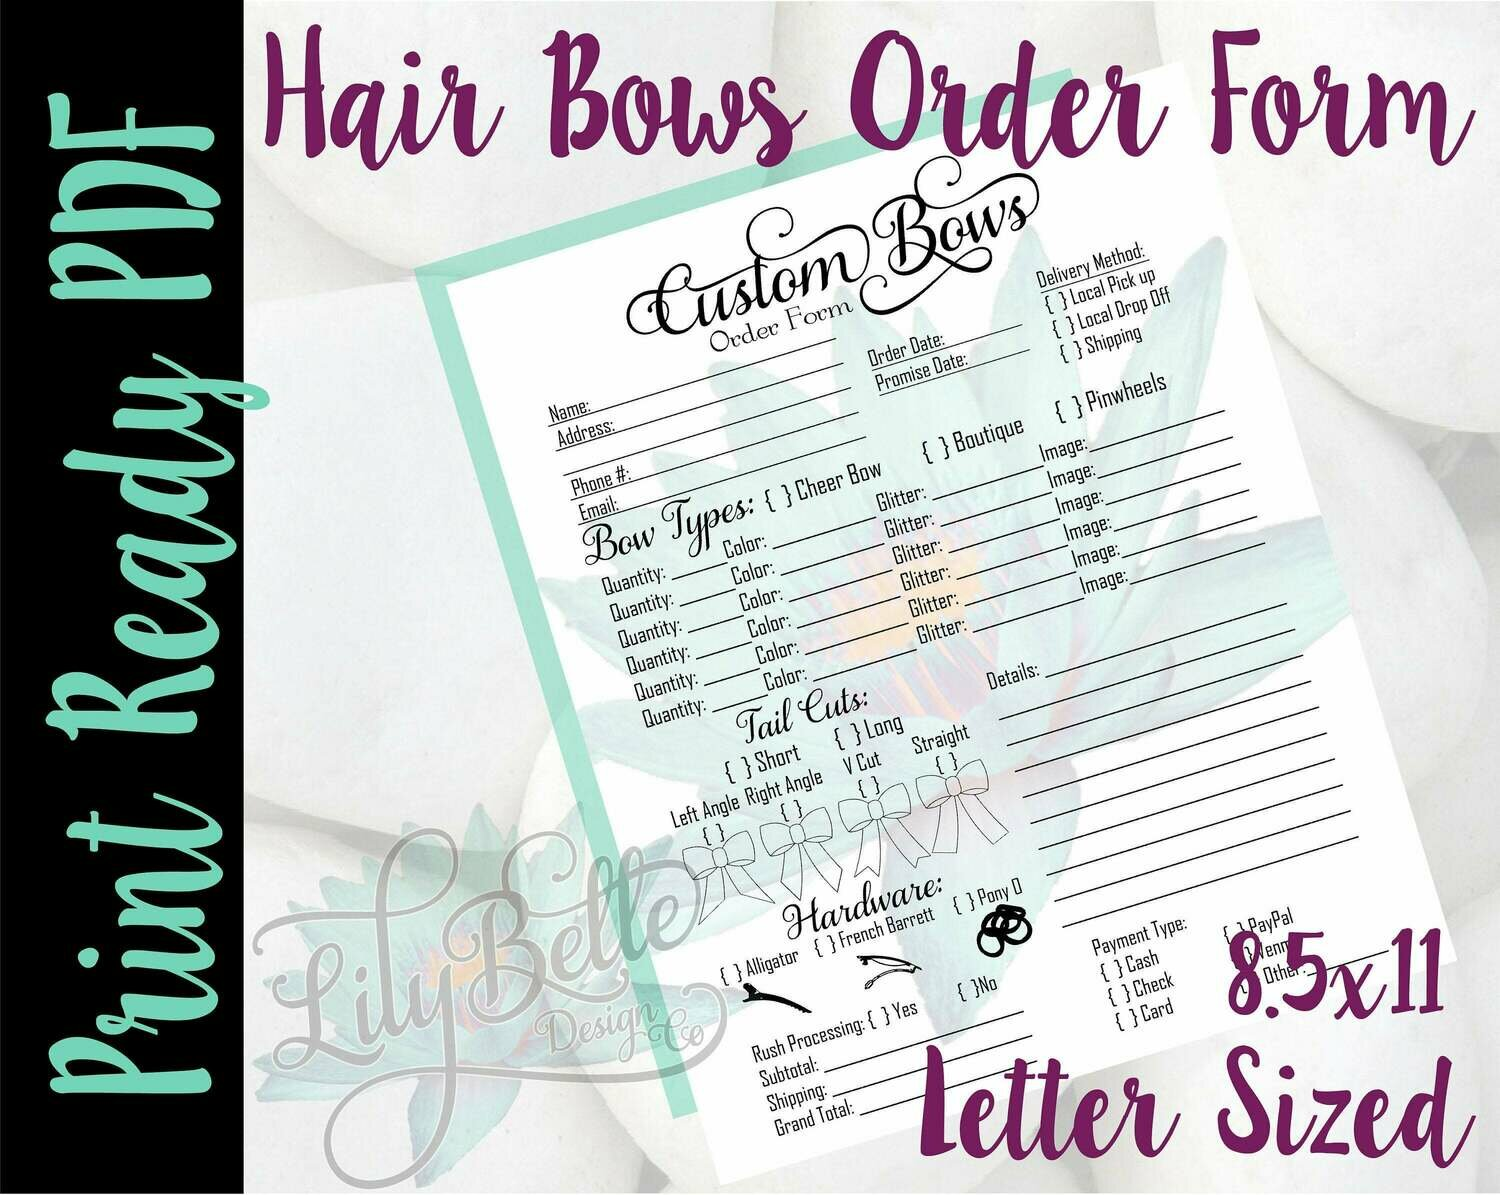 Bows Order Form in Letter Sized in PDf form